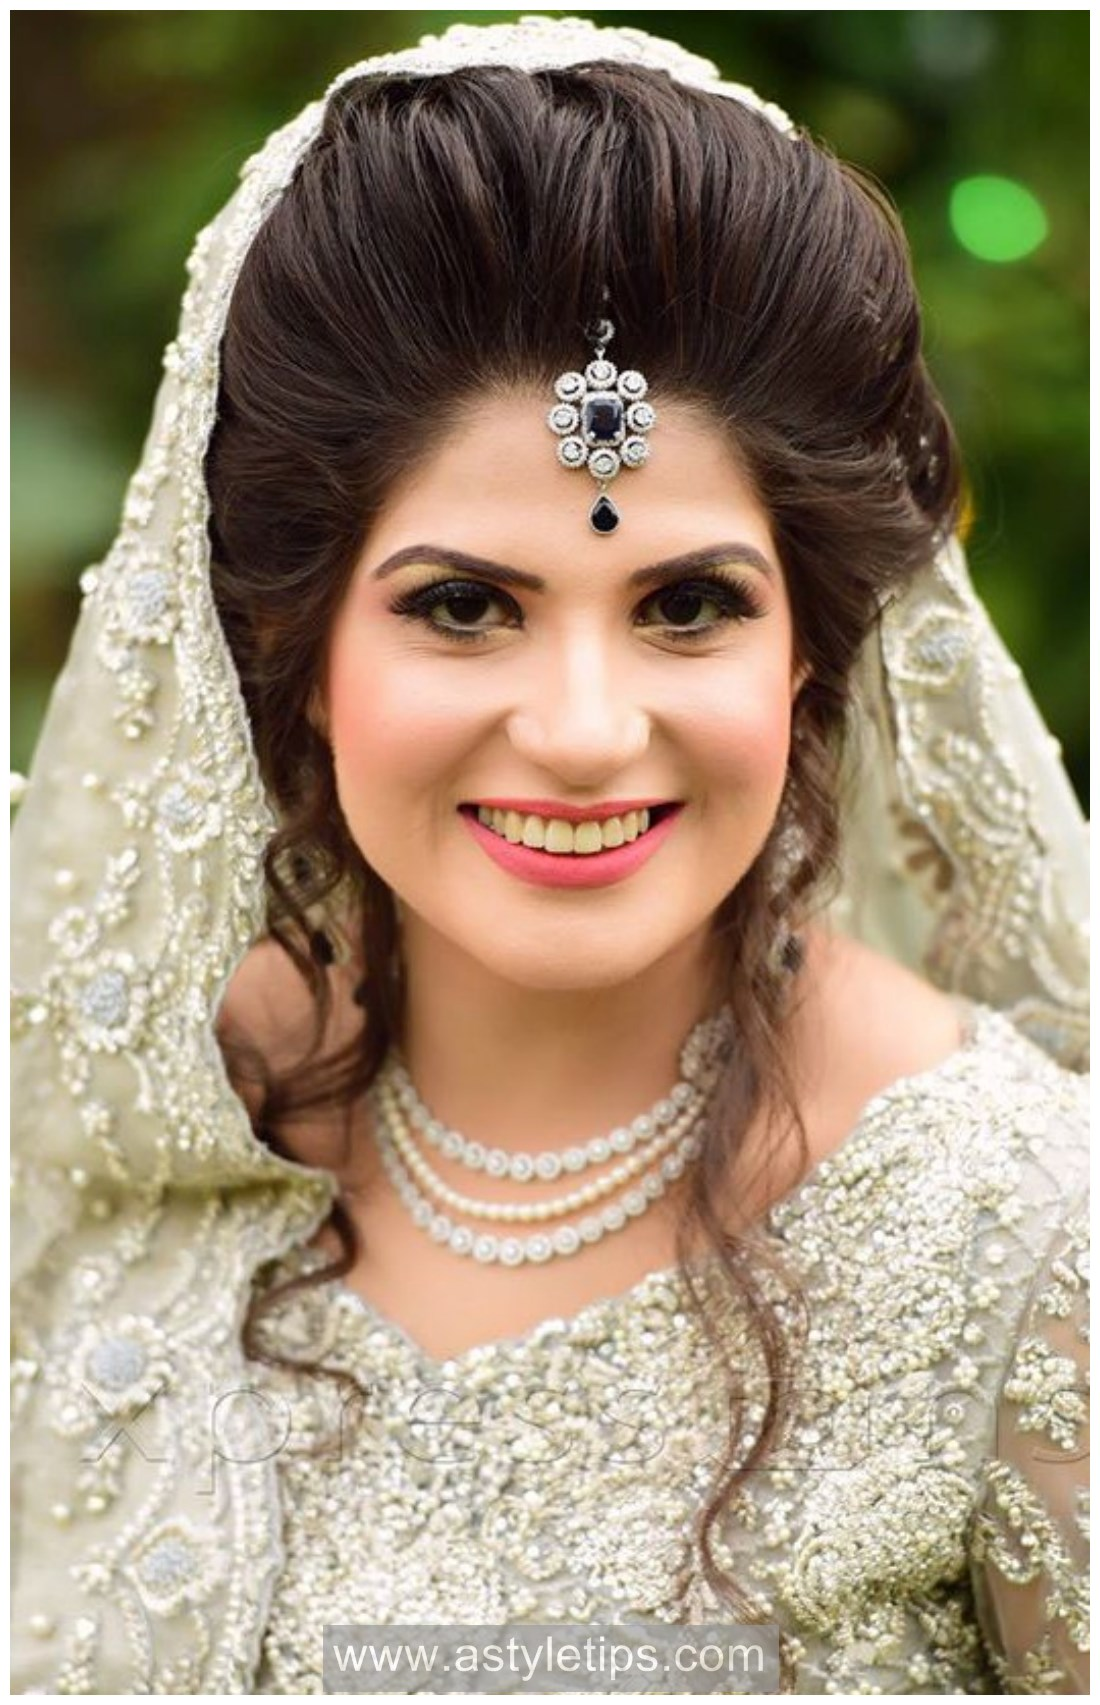 Wedding & Nikkah dresses Suits Best Designs for Ladies | A style tips